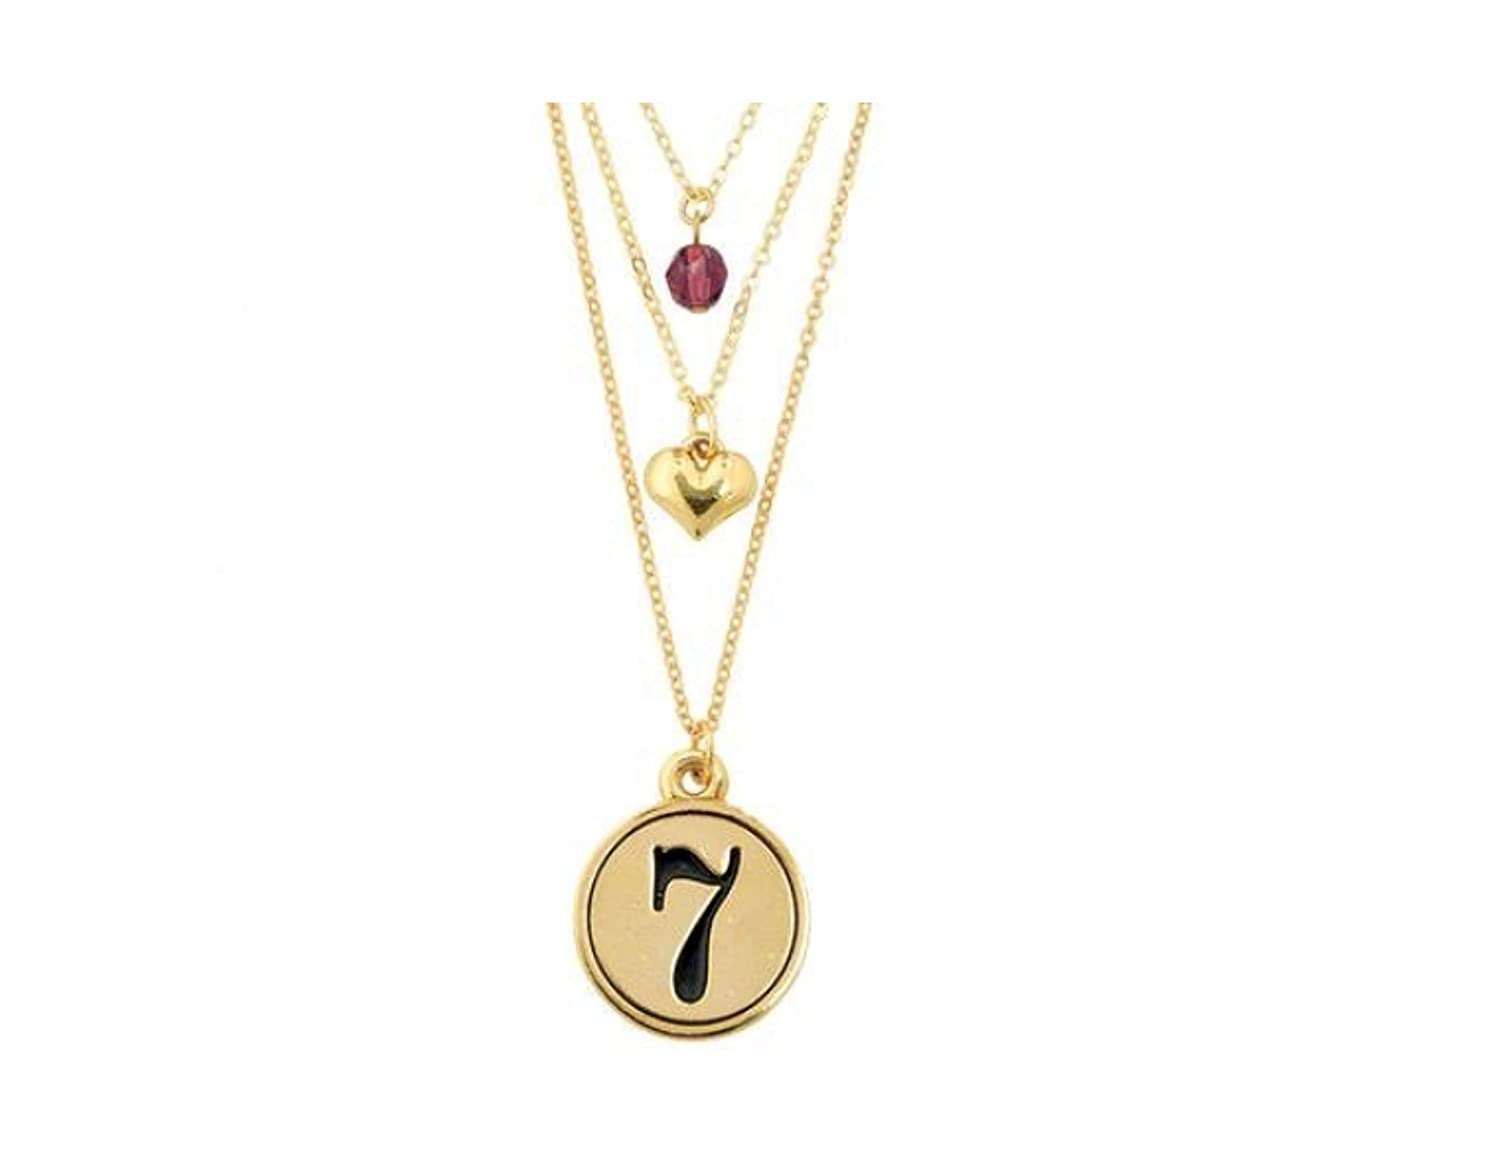 Gold-Plated ELEGANI Layered Gods Perfection Necklace Religious Pendant Charm Necklace Jewelry for Women Gift Idea